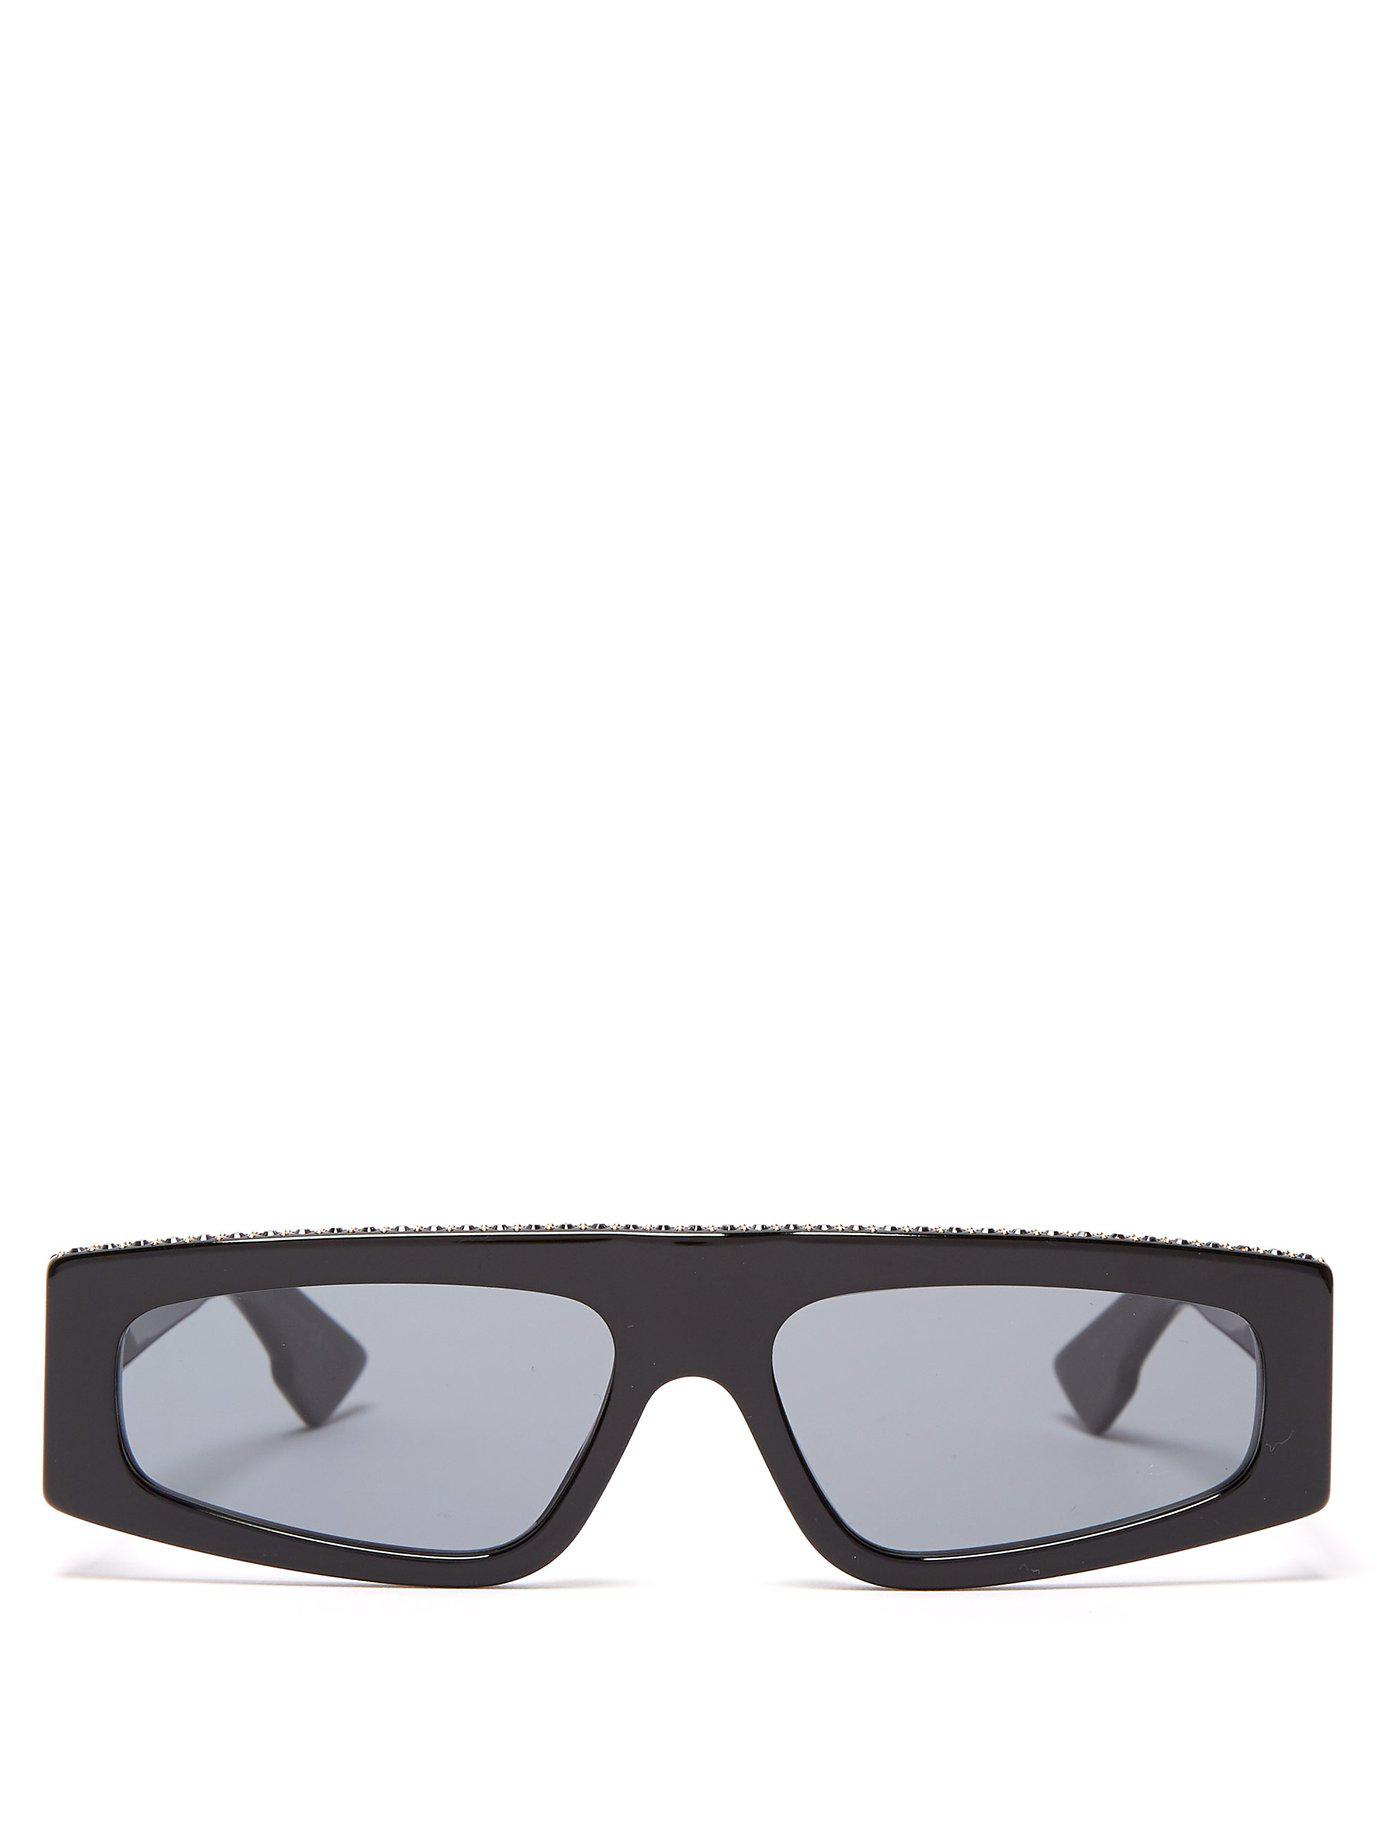 830cf1a2f1bf Lyst - Dior Power Crystal Embellished Flat Top Sunglasses in Black ...